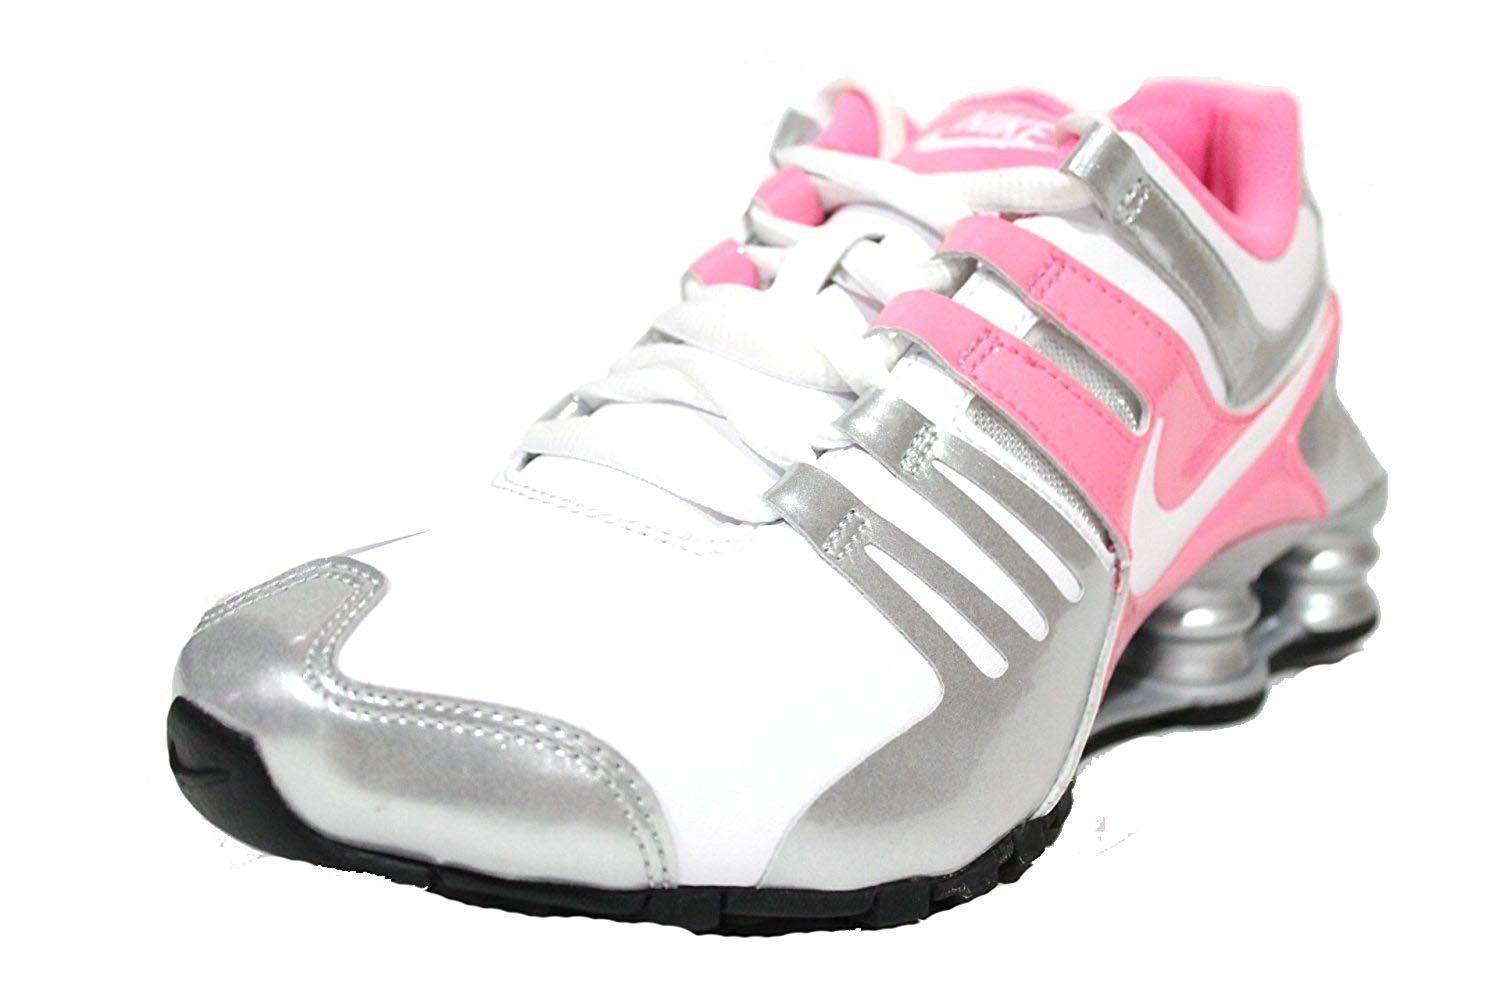 73e8c0be6a7 Nike Women s Shox Current White Pink Silver Running Shoes 639657 102 size  6.5     For more information